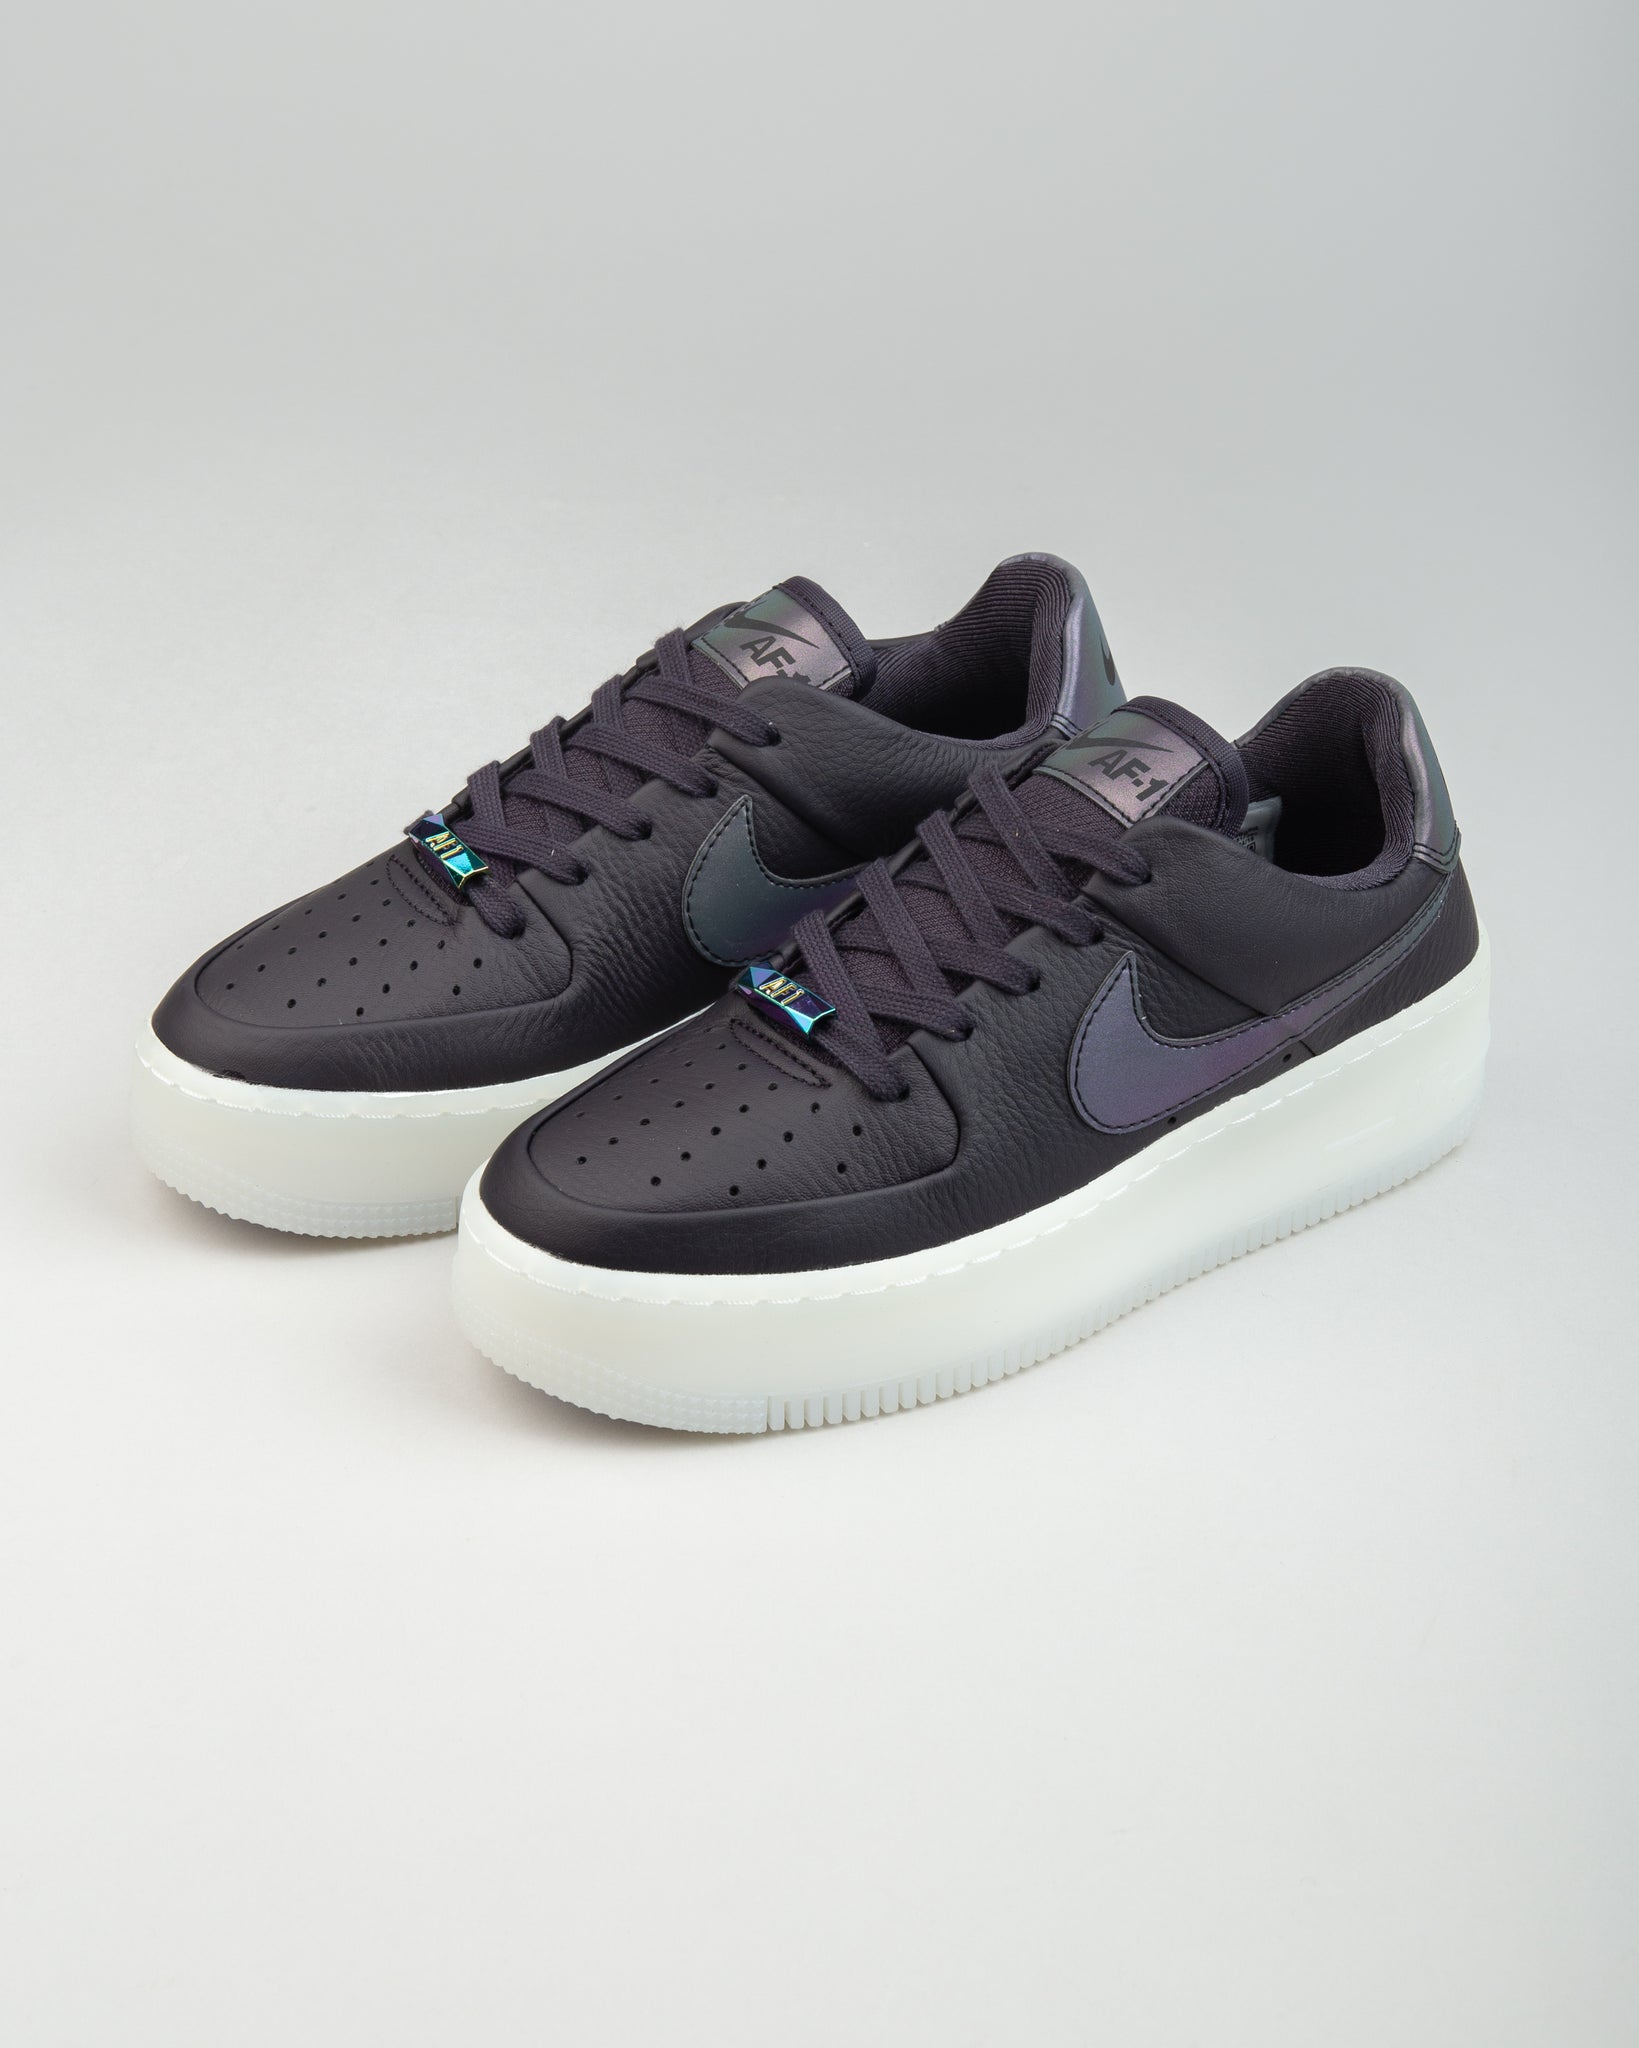 W Air Force 1 Sage Low LX Oil Grey/Blank White